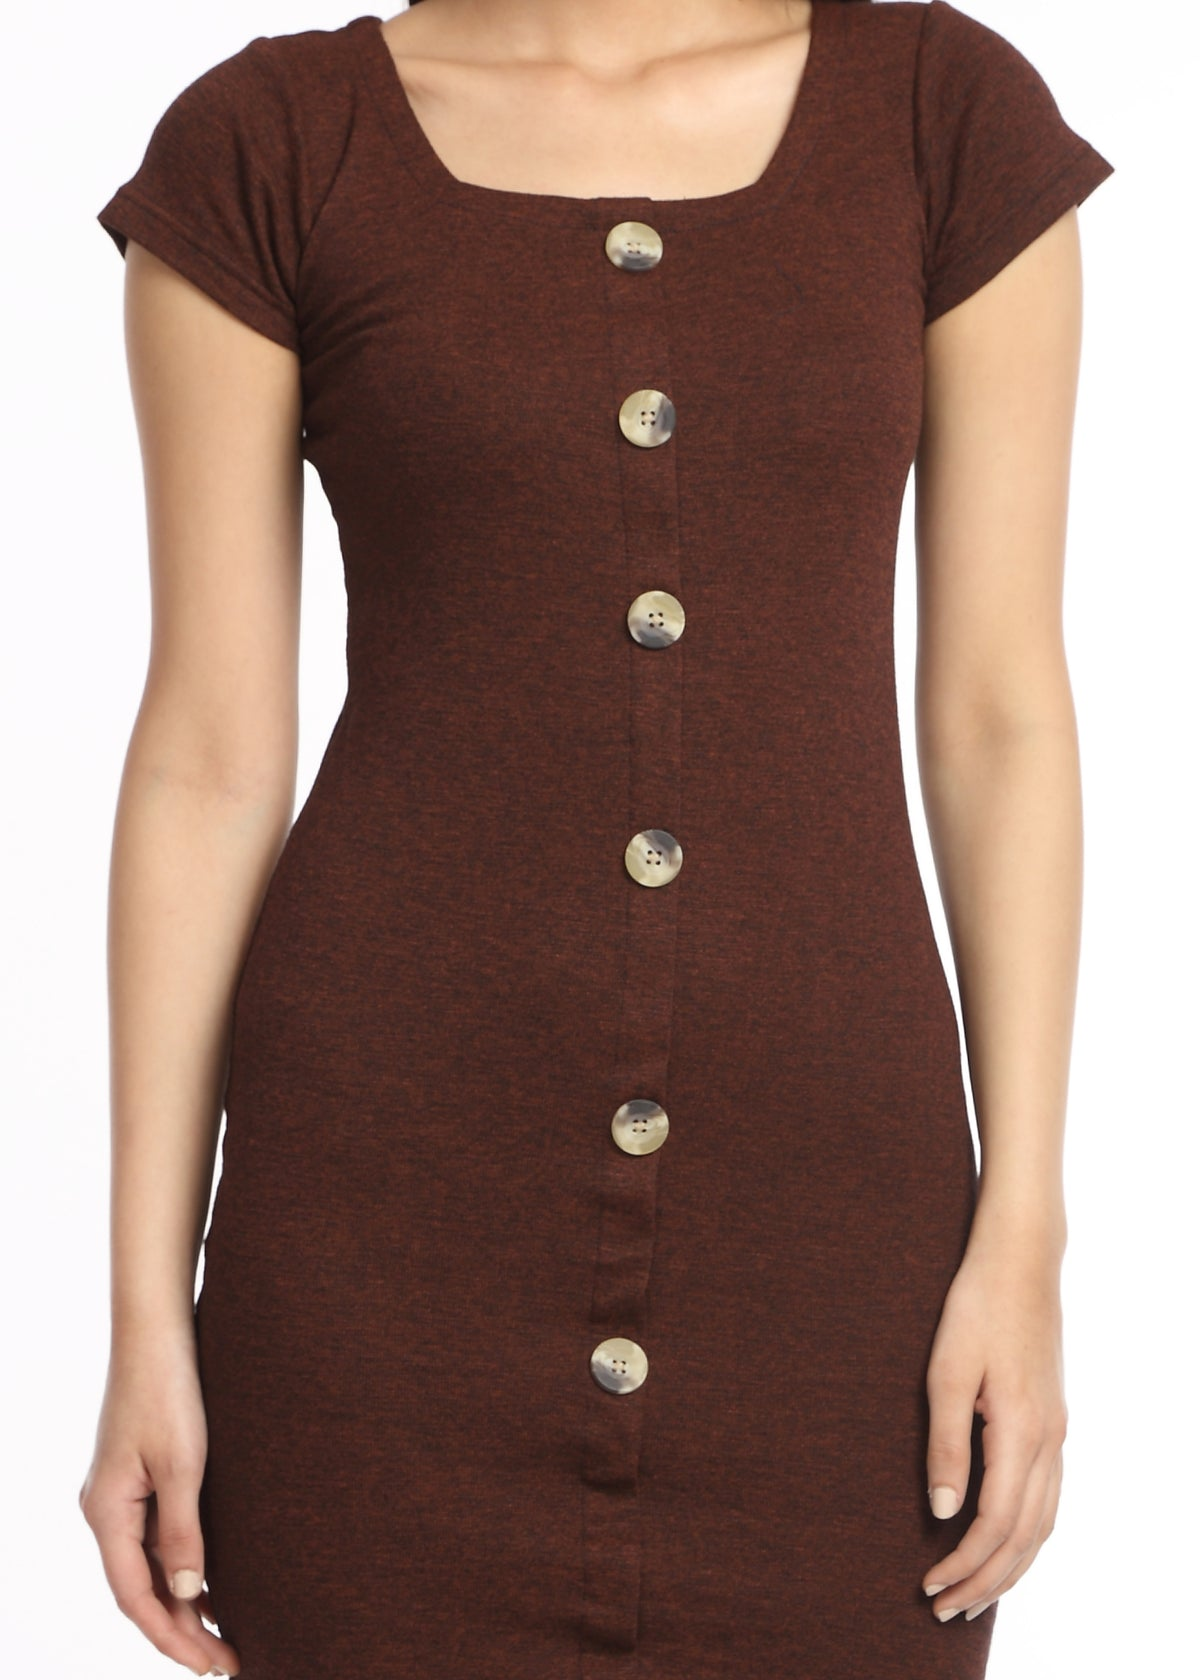 Brown Bodycon Dress